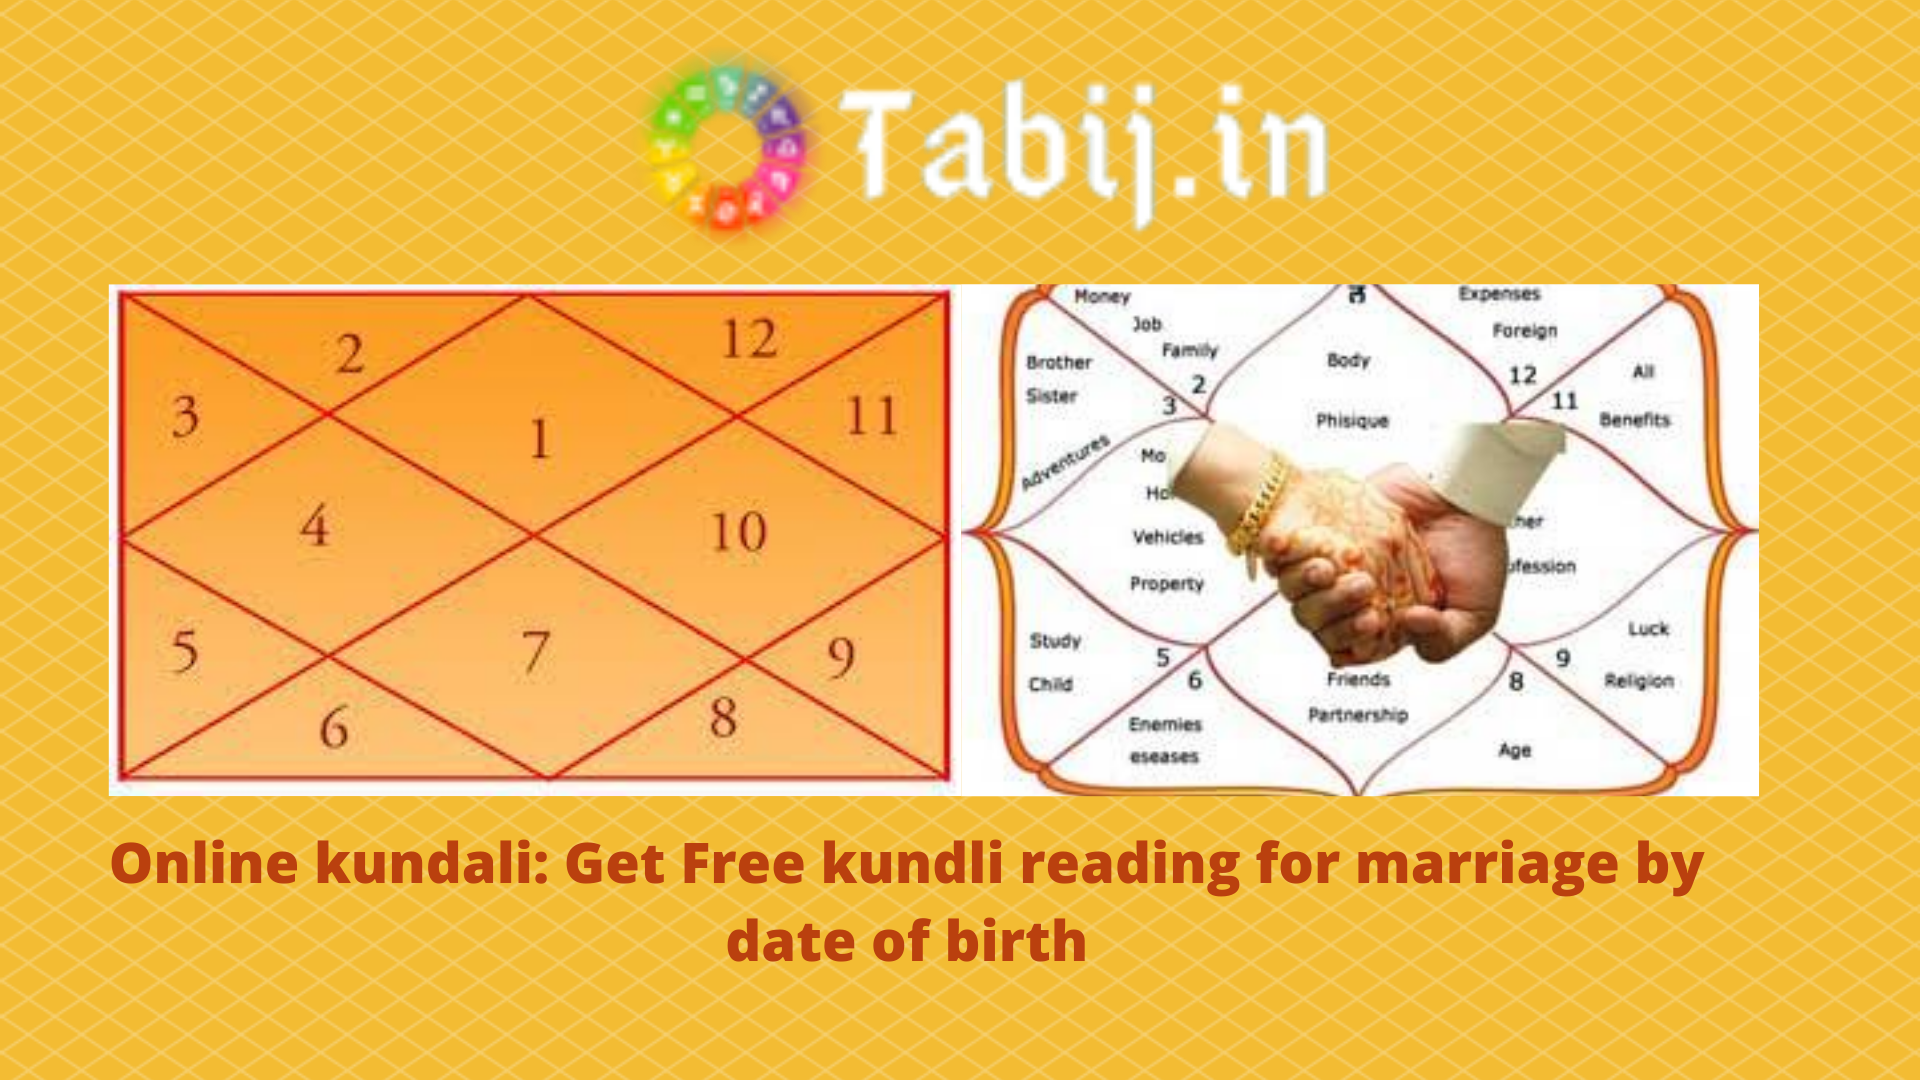 Online kundali_ Get Free kundli reading for marriage by date of birth